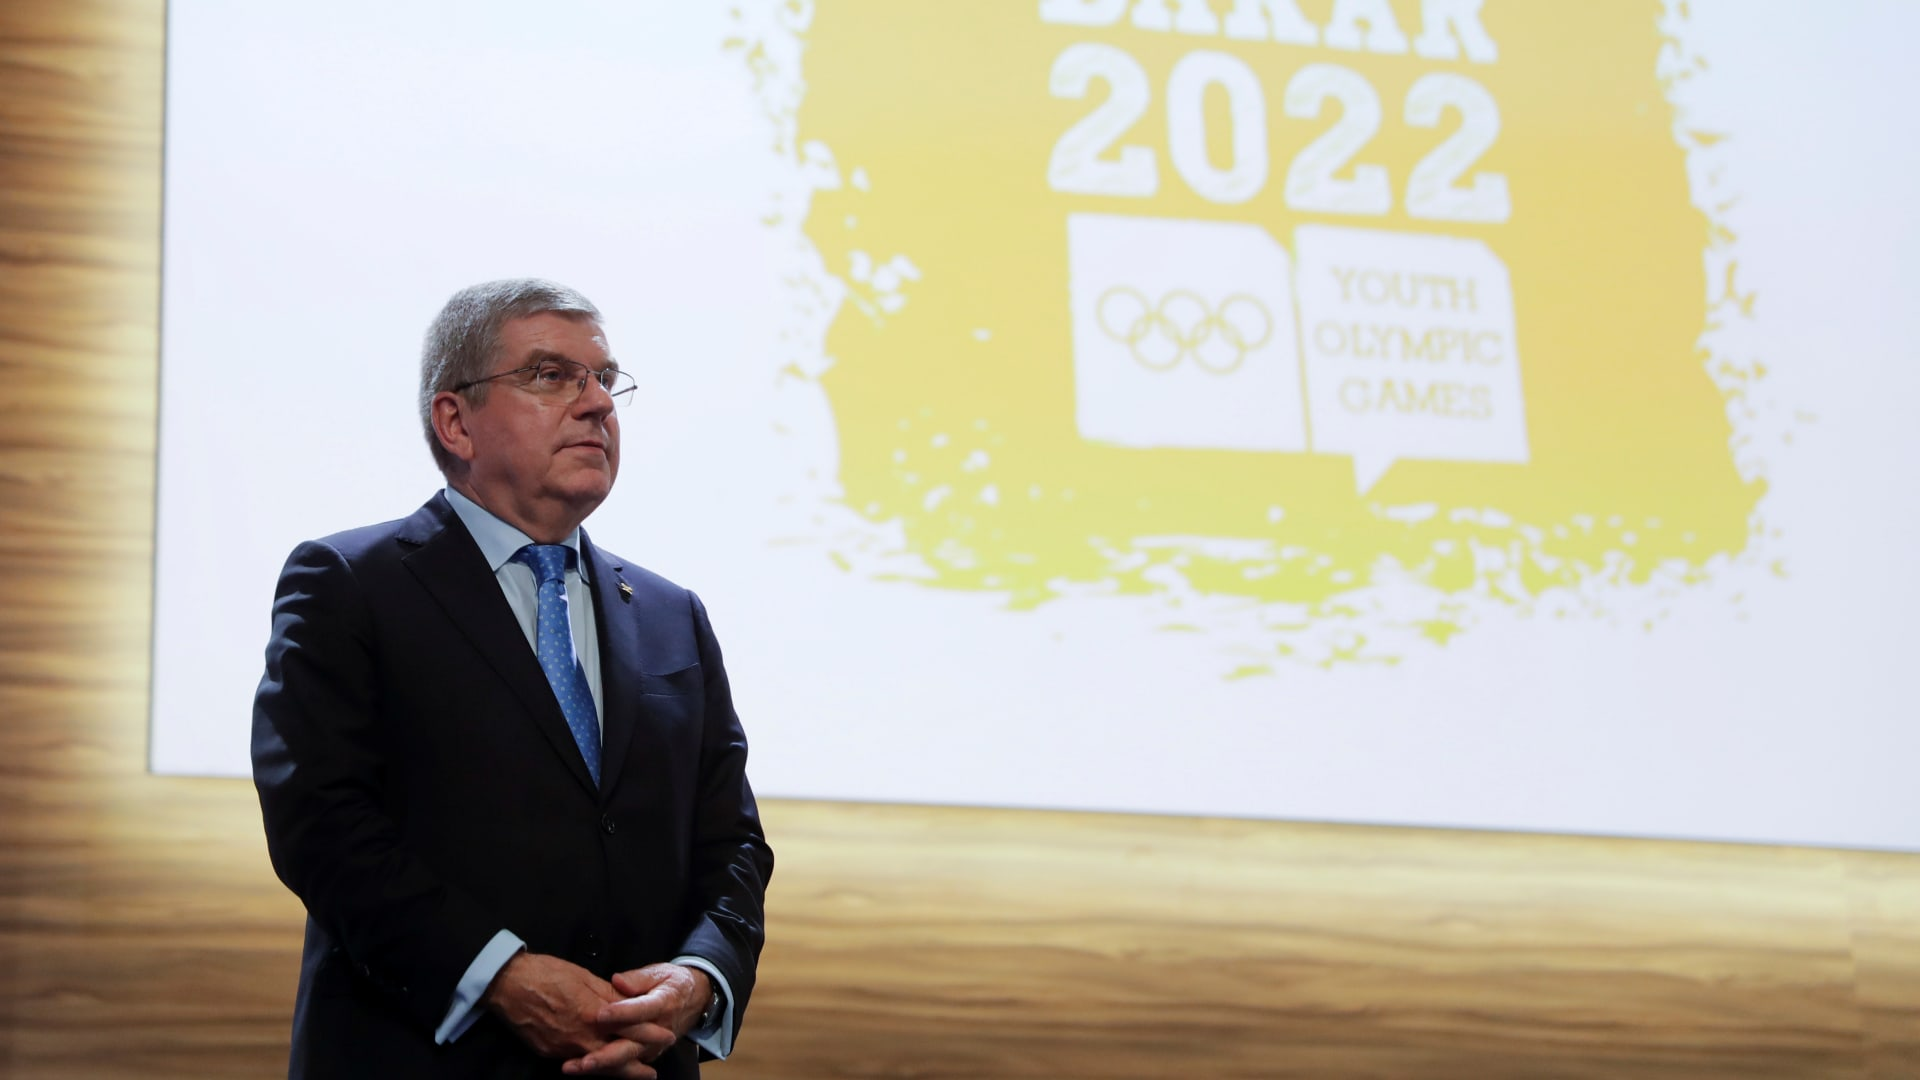 Senegal and the IOC agree to postpone the Youth Olympic Games Dakar 2022 to 2026